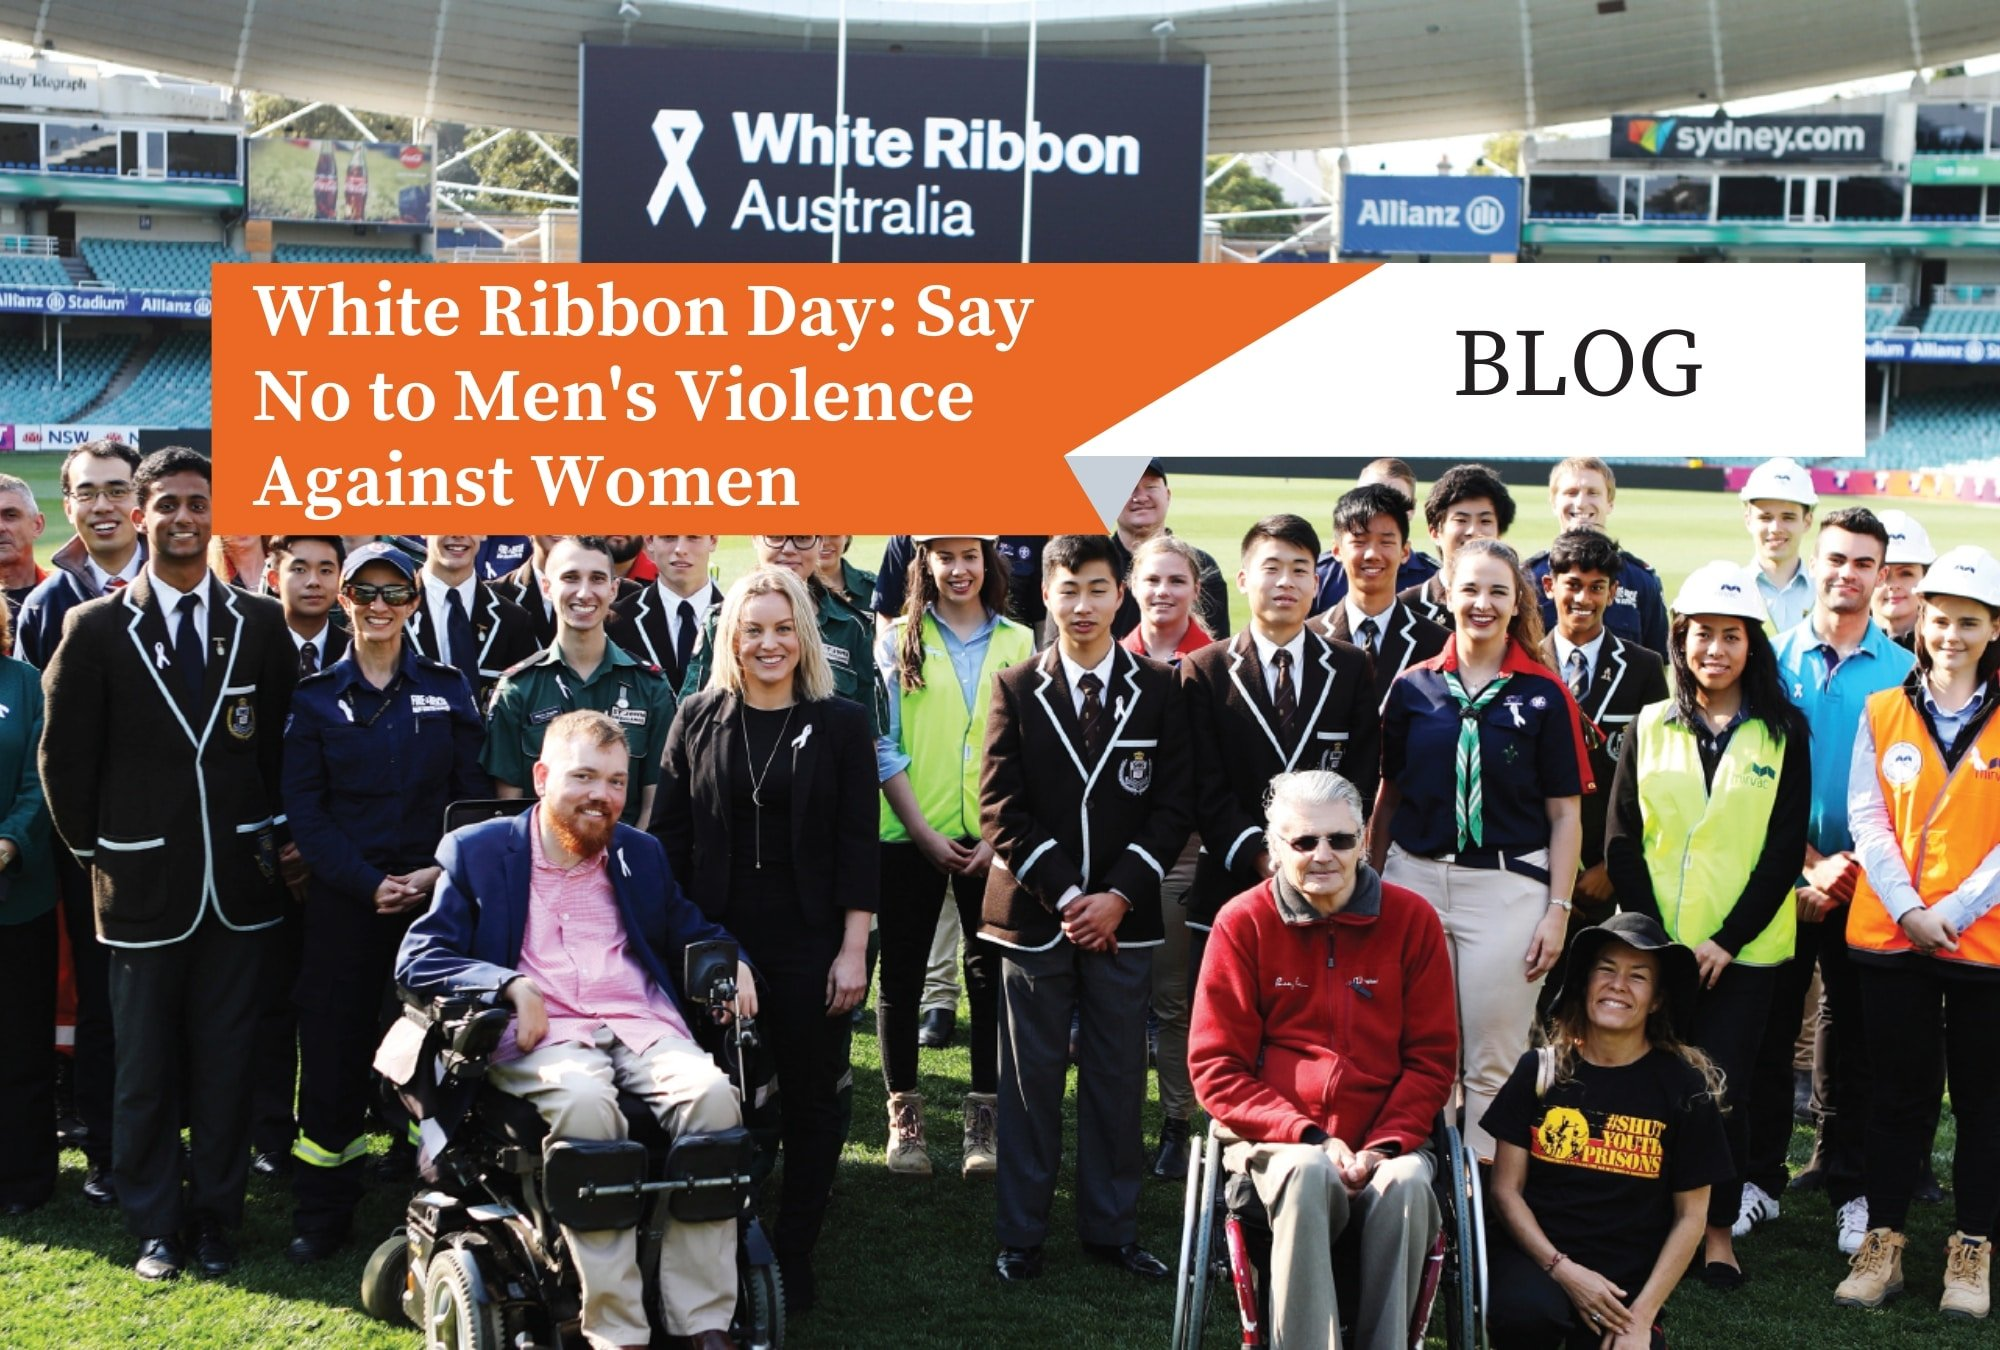 White Ribbon Day: Say No to Men's Violence Against Women